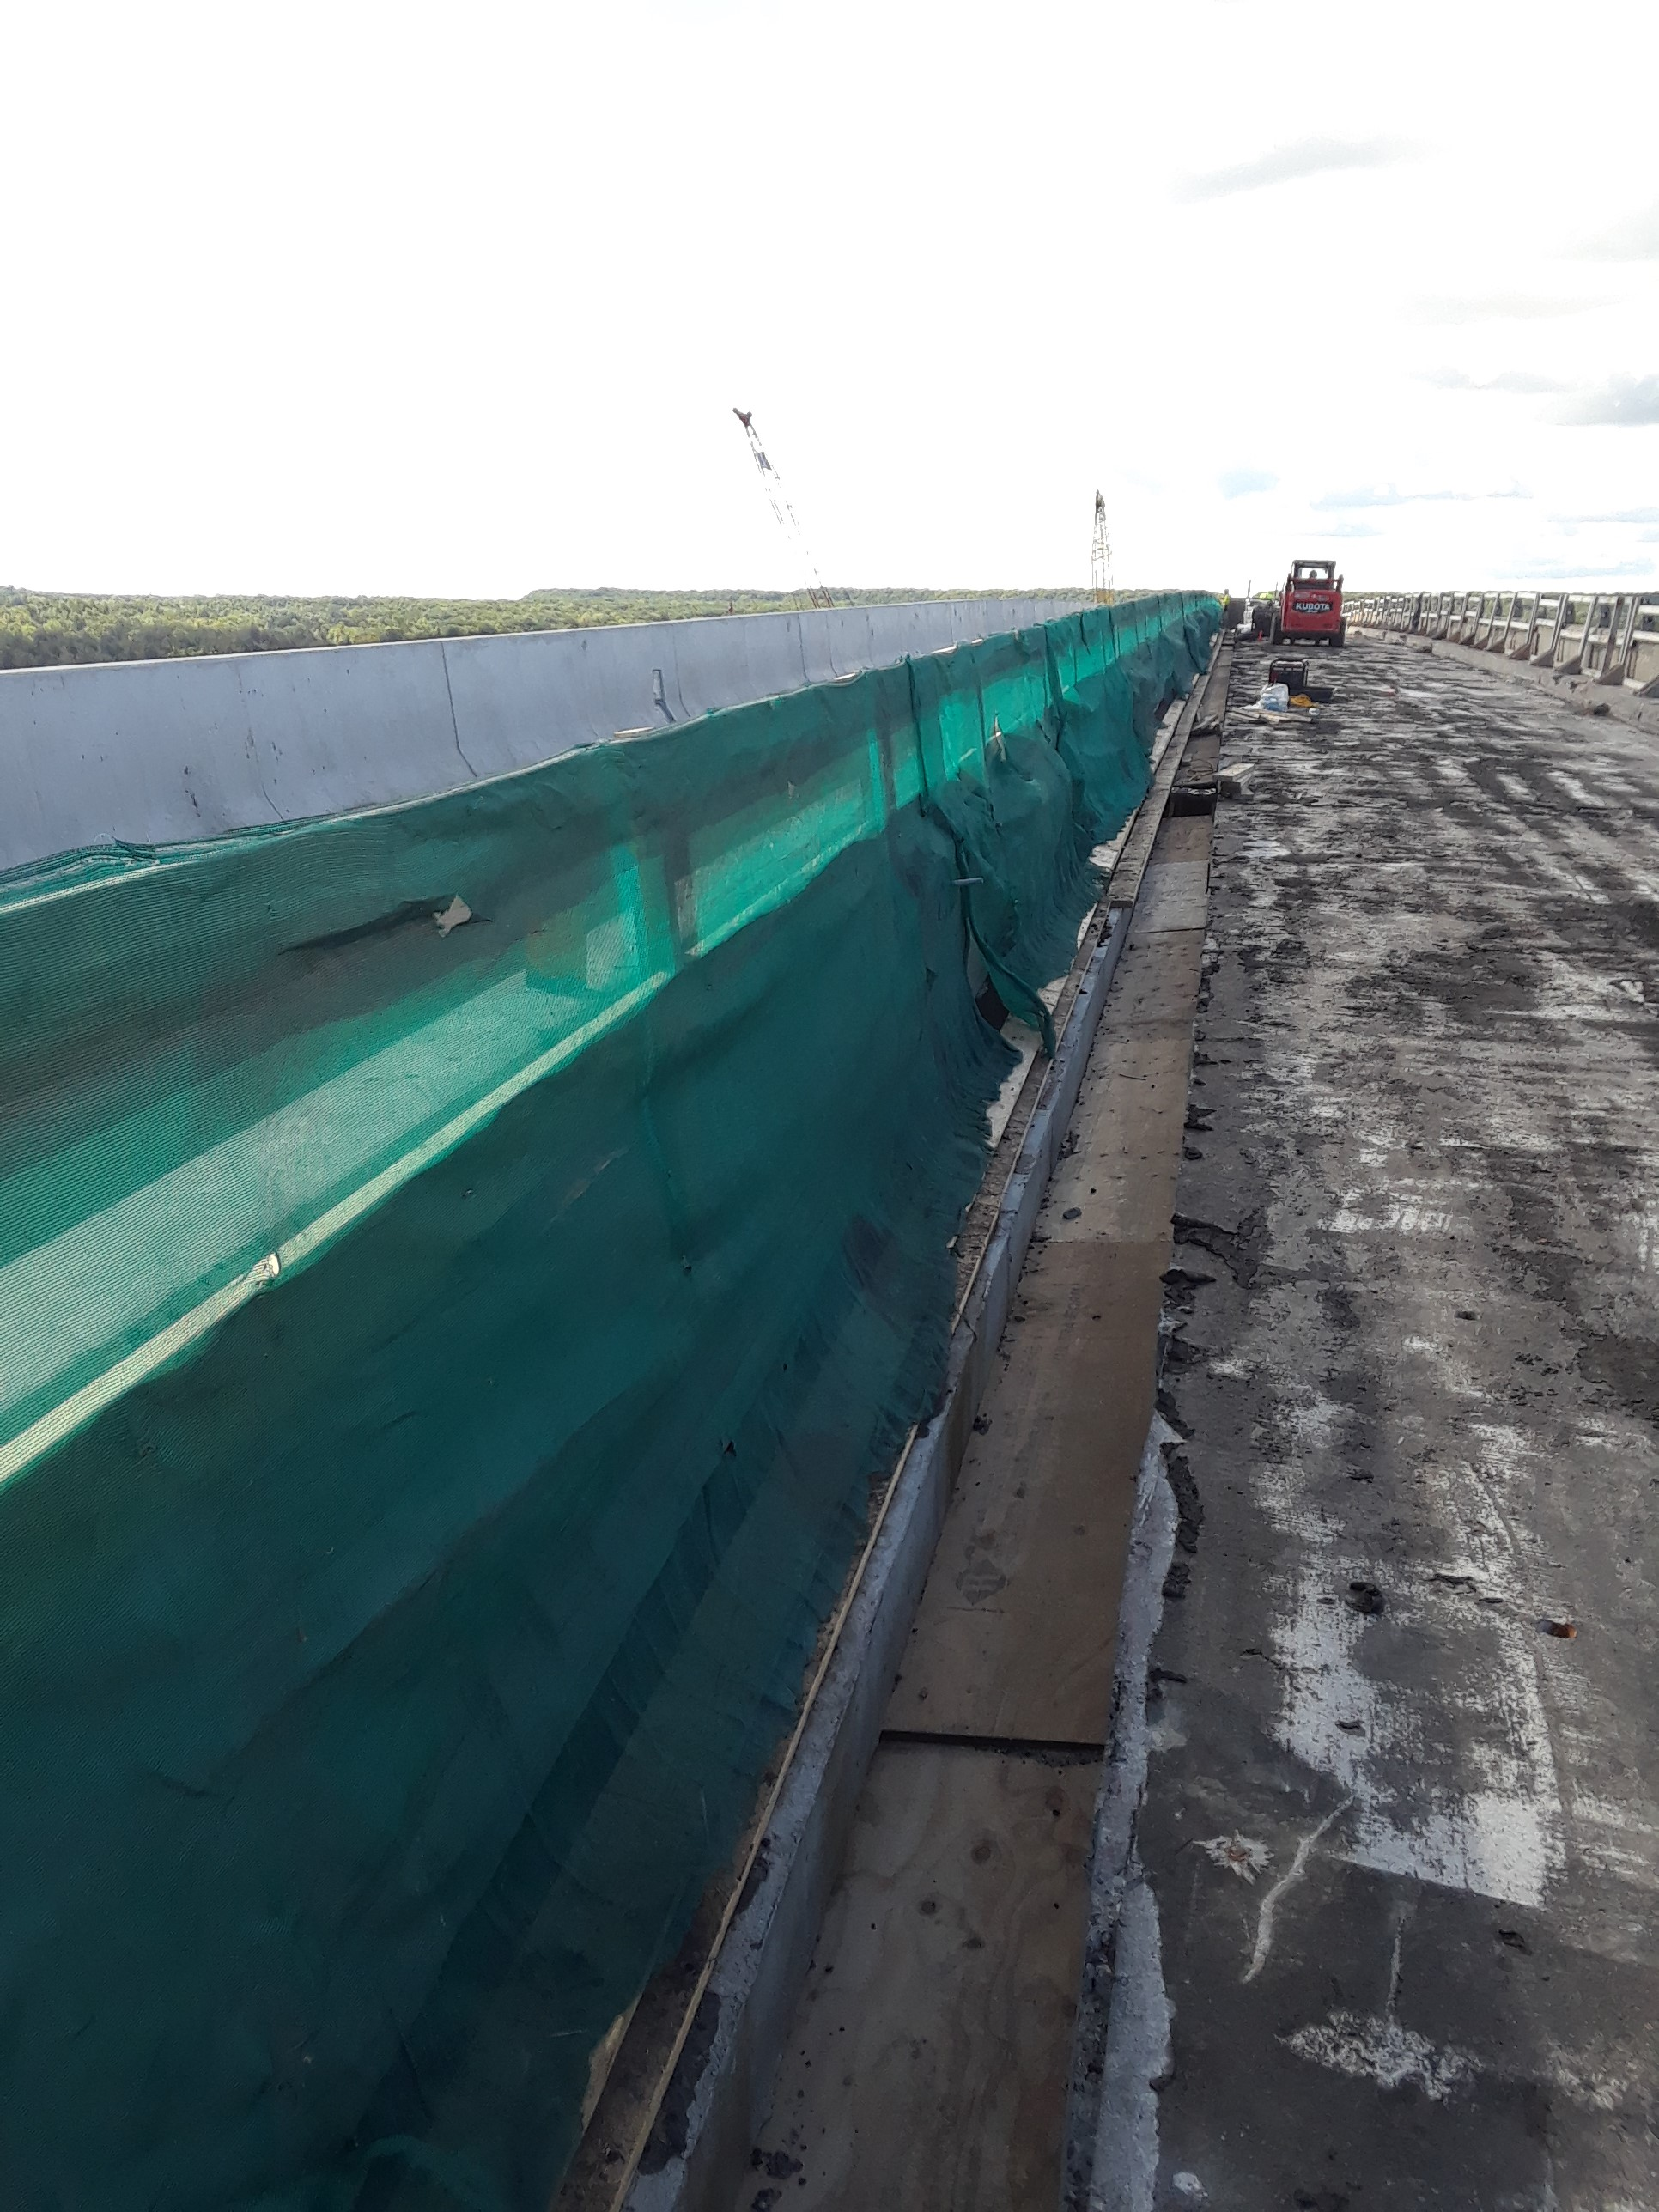 Green construction fencing on TBC for debris/safety control